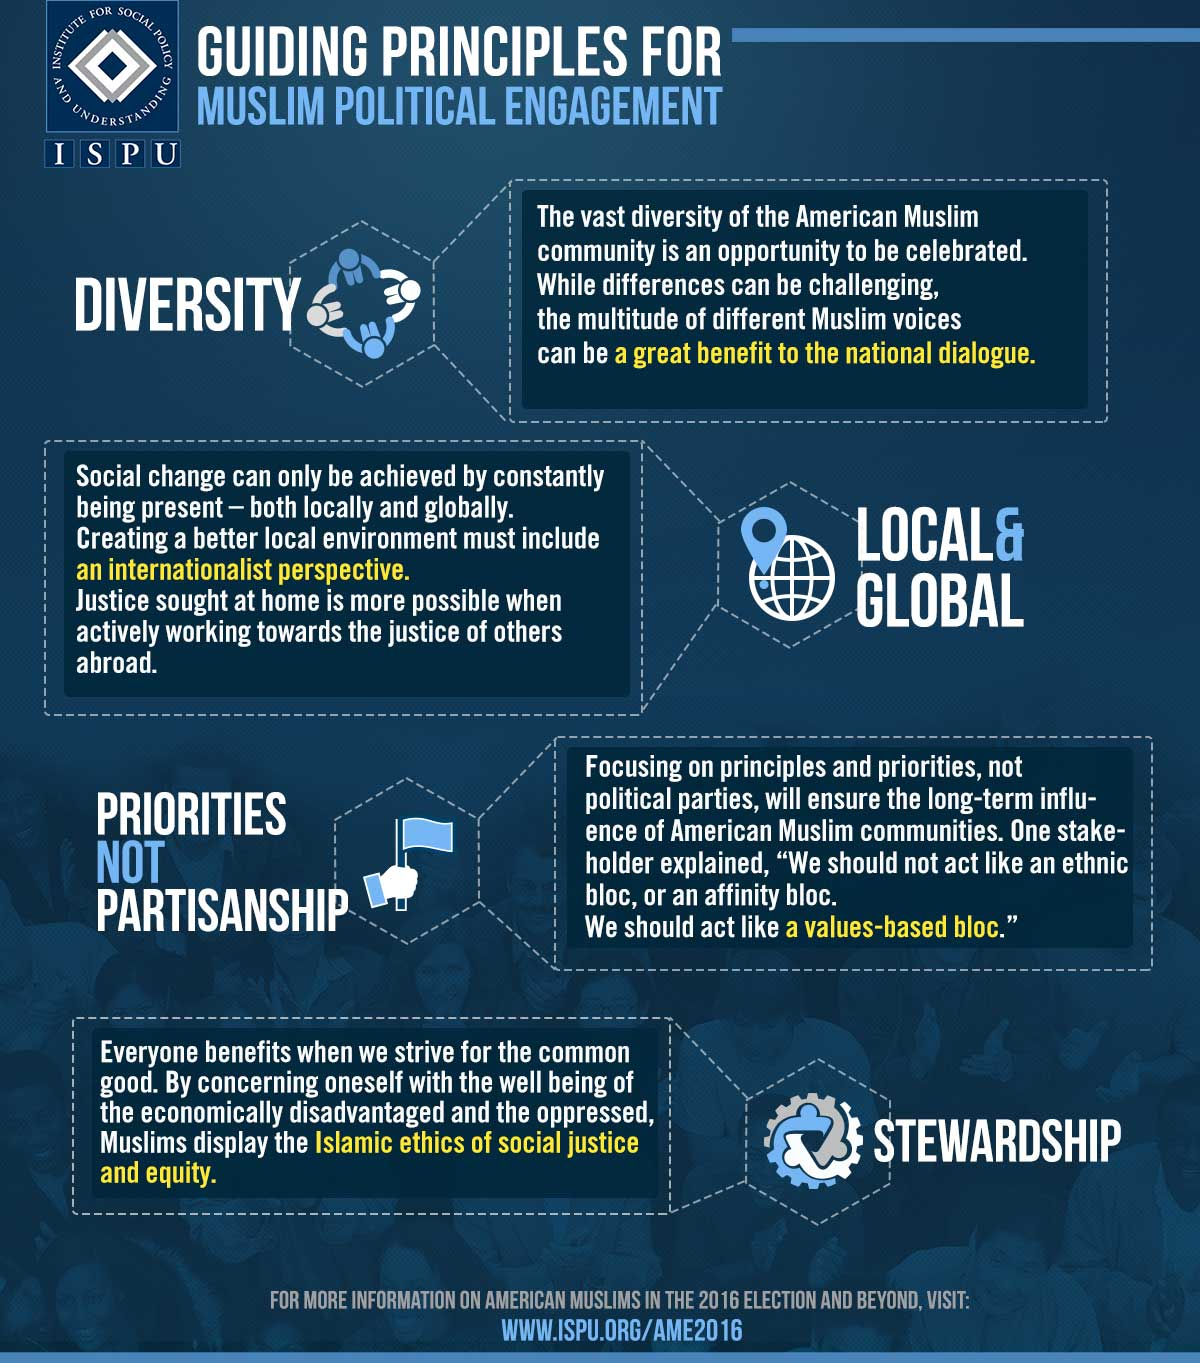 Infographic showing the guiding principles for Muslim Political Engagement. Diversity - While differences can be challenging, the multitude of different Muslim voices can be a great benefit to national dialogue. Local and global - social change can only be achieved by constantly being present, both locally and globally. Priorities not partisanship - Focusing on principles not political parties will ensure the longterm influence of American Muslim communities. Stewardship - By concerning oneself with the well-being of the economically disadvantaged and the oppressed, Muslims display the Islamic ethics of social justice and equity.